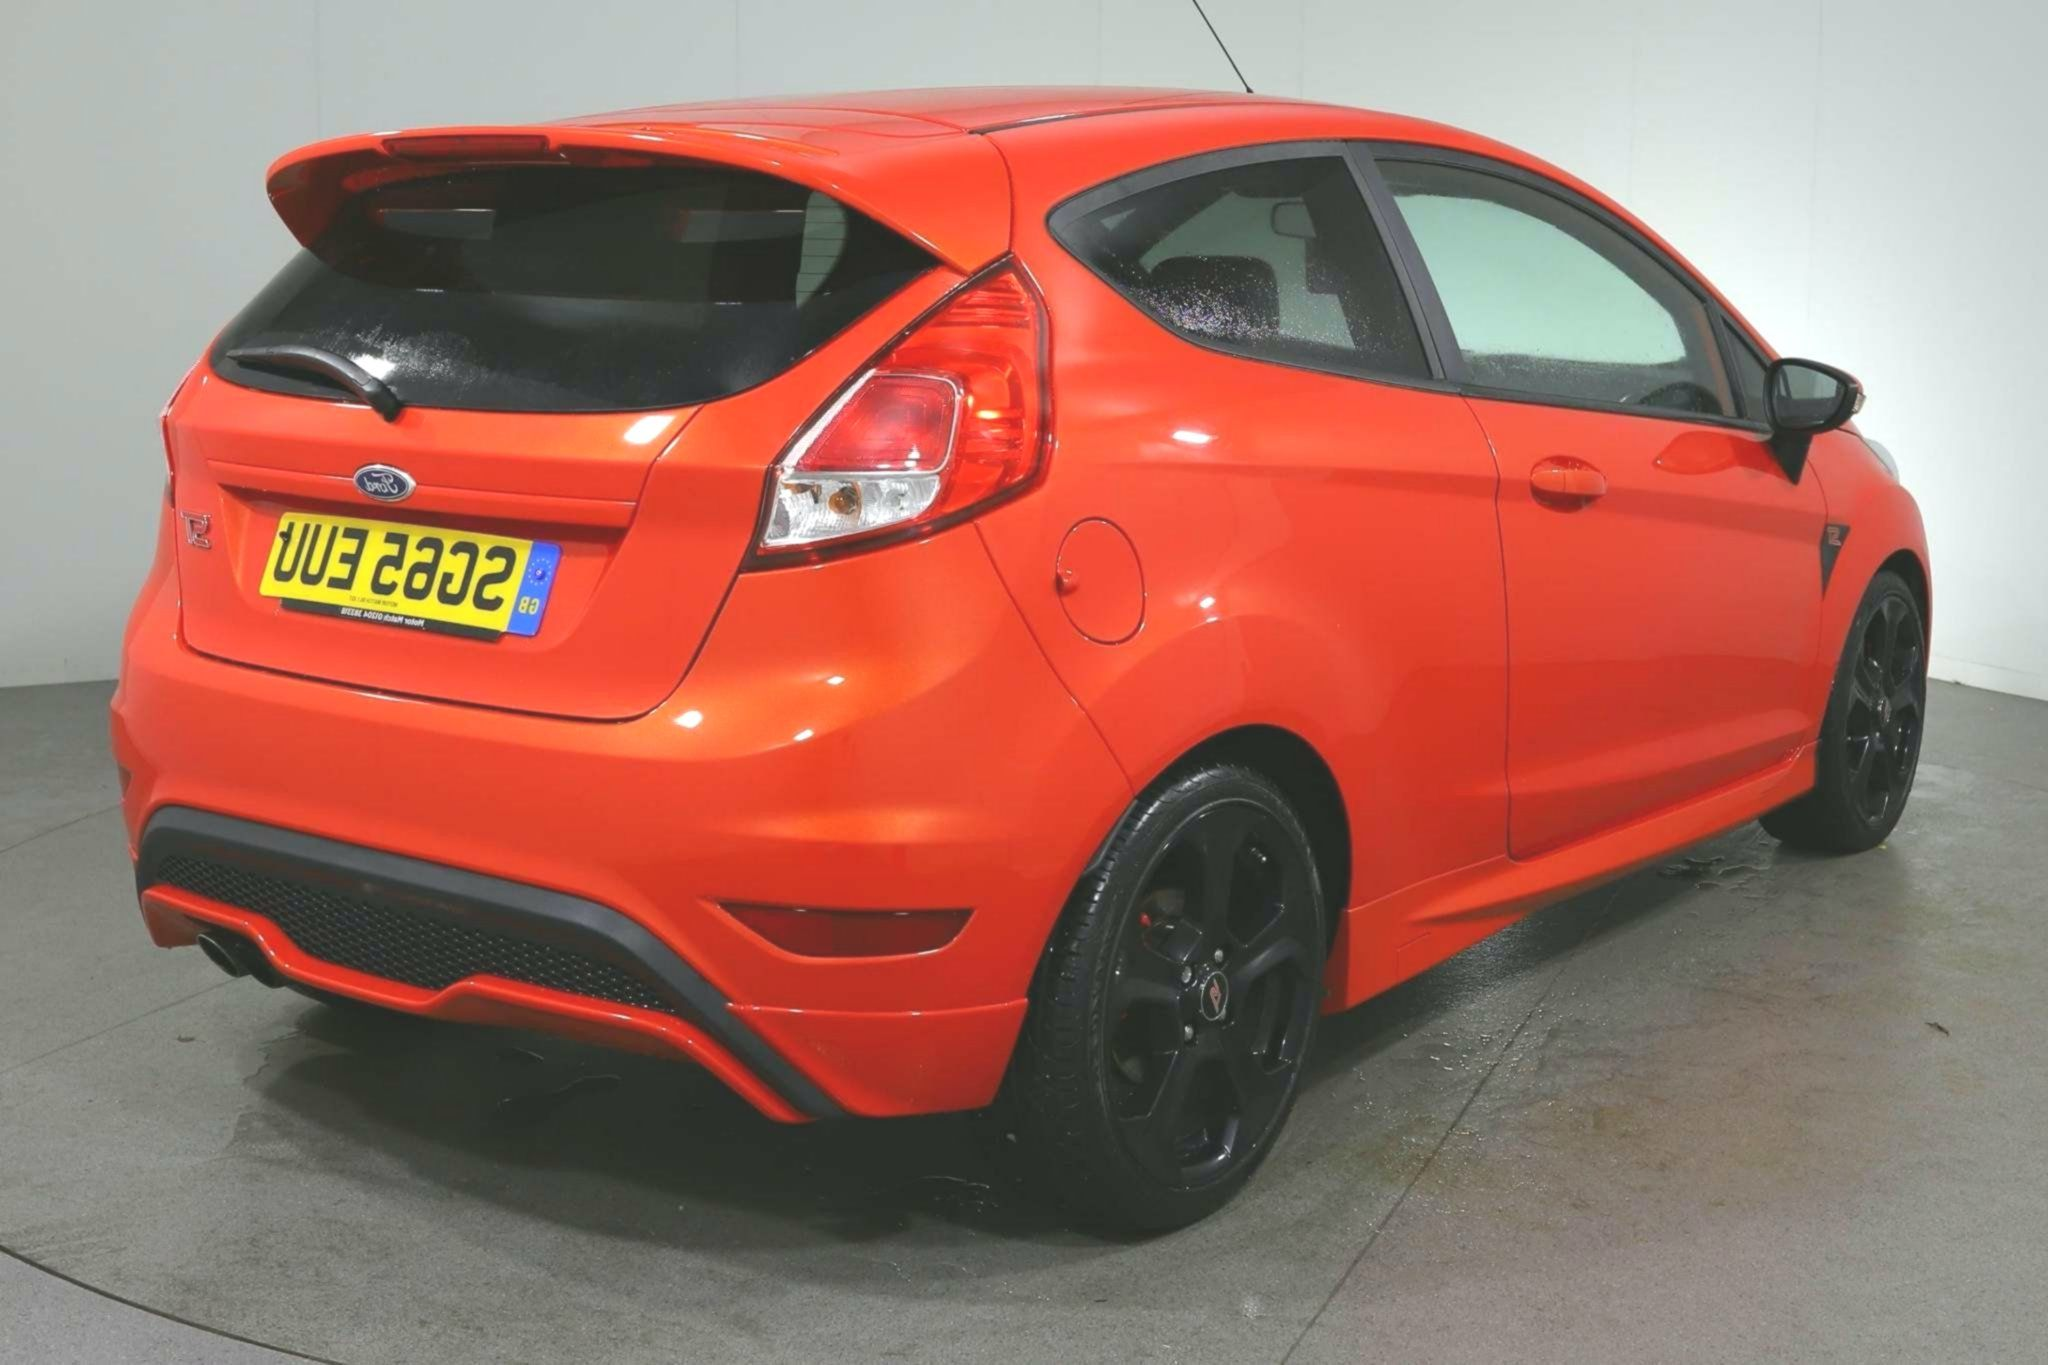 Ford Fiesta 16 Ecoboost St 2 3dr For Sale In 2020 Ford Fiesta Ford 3dr